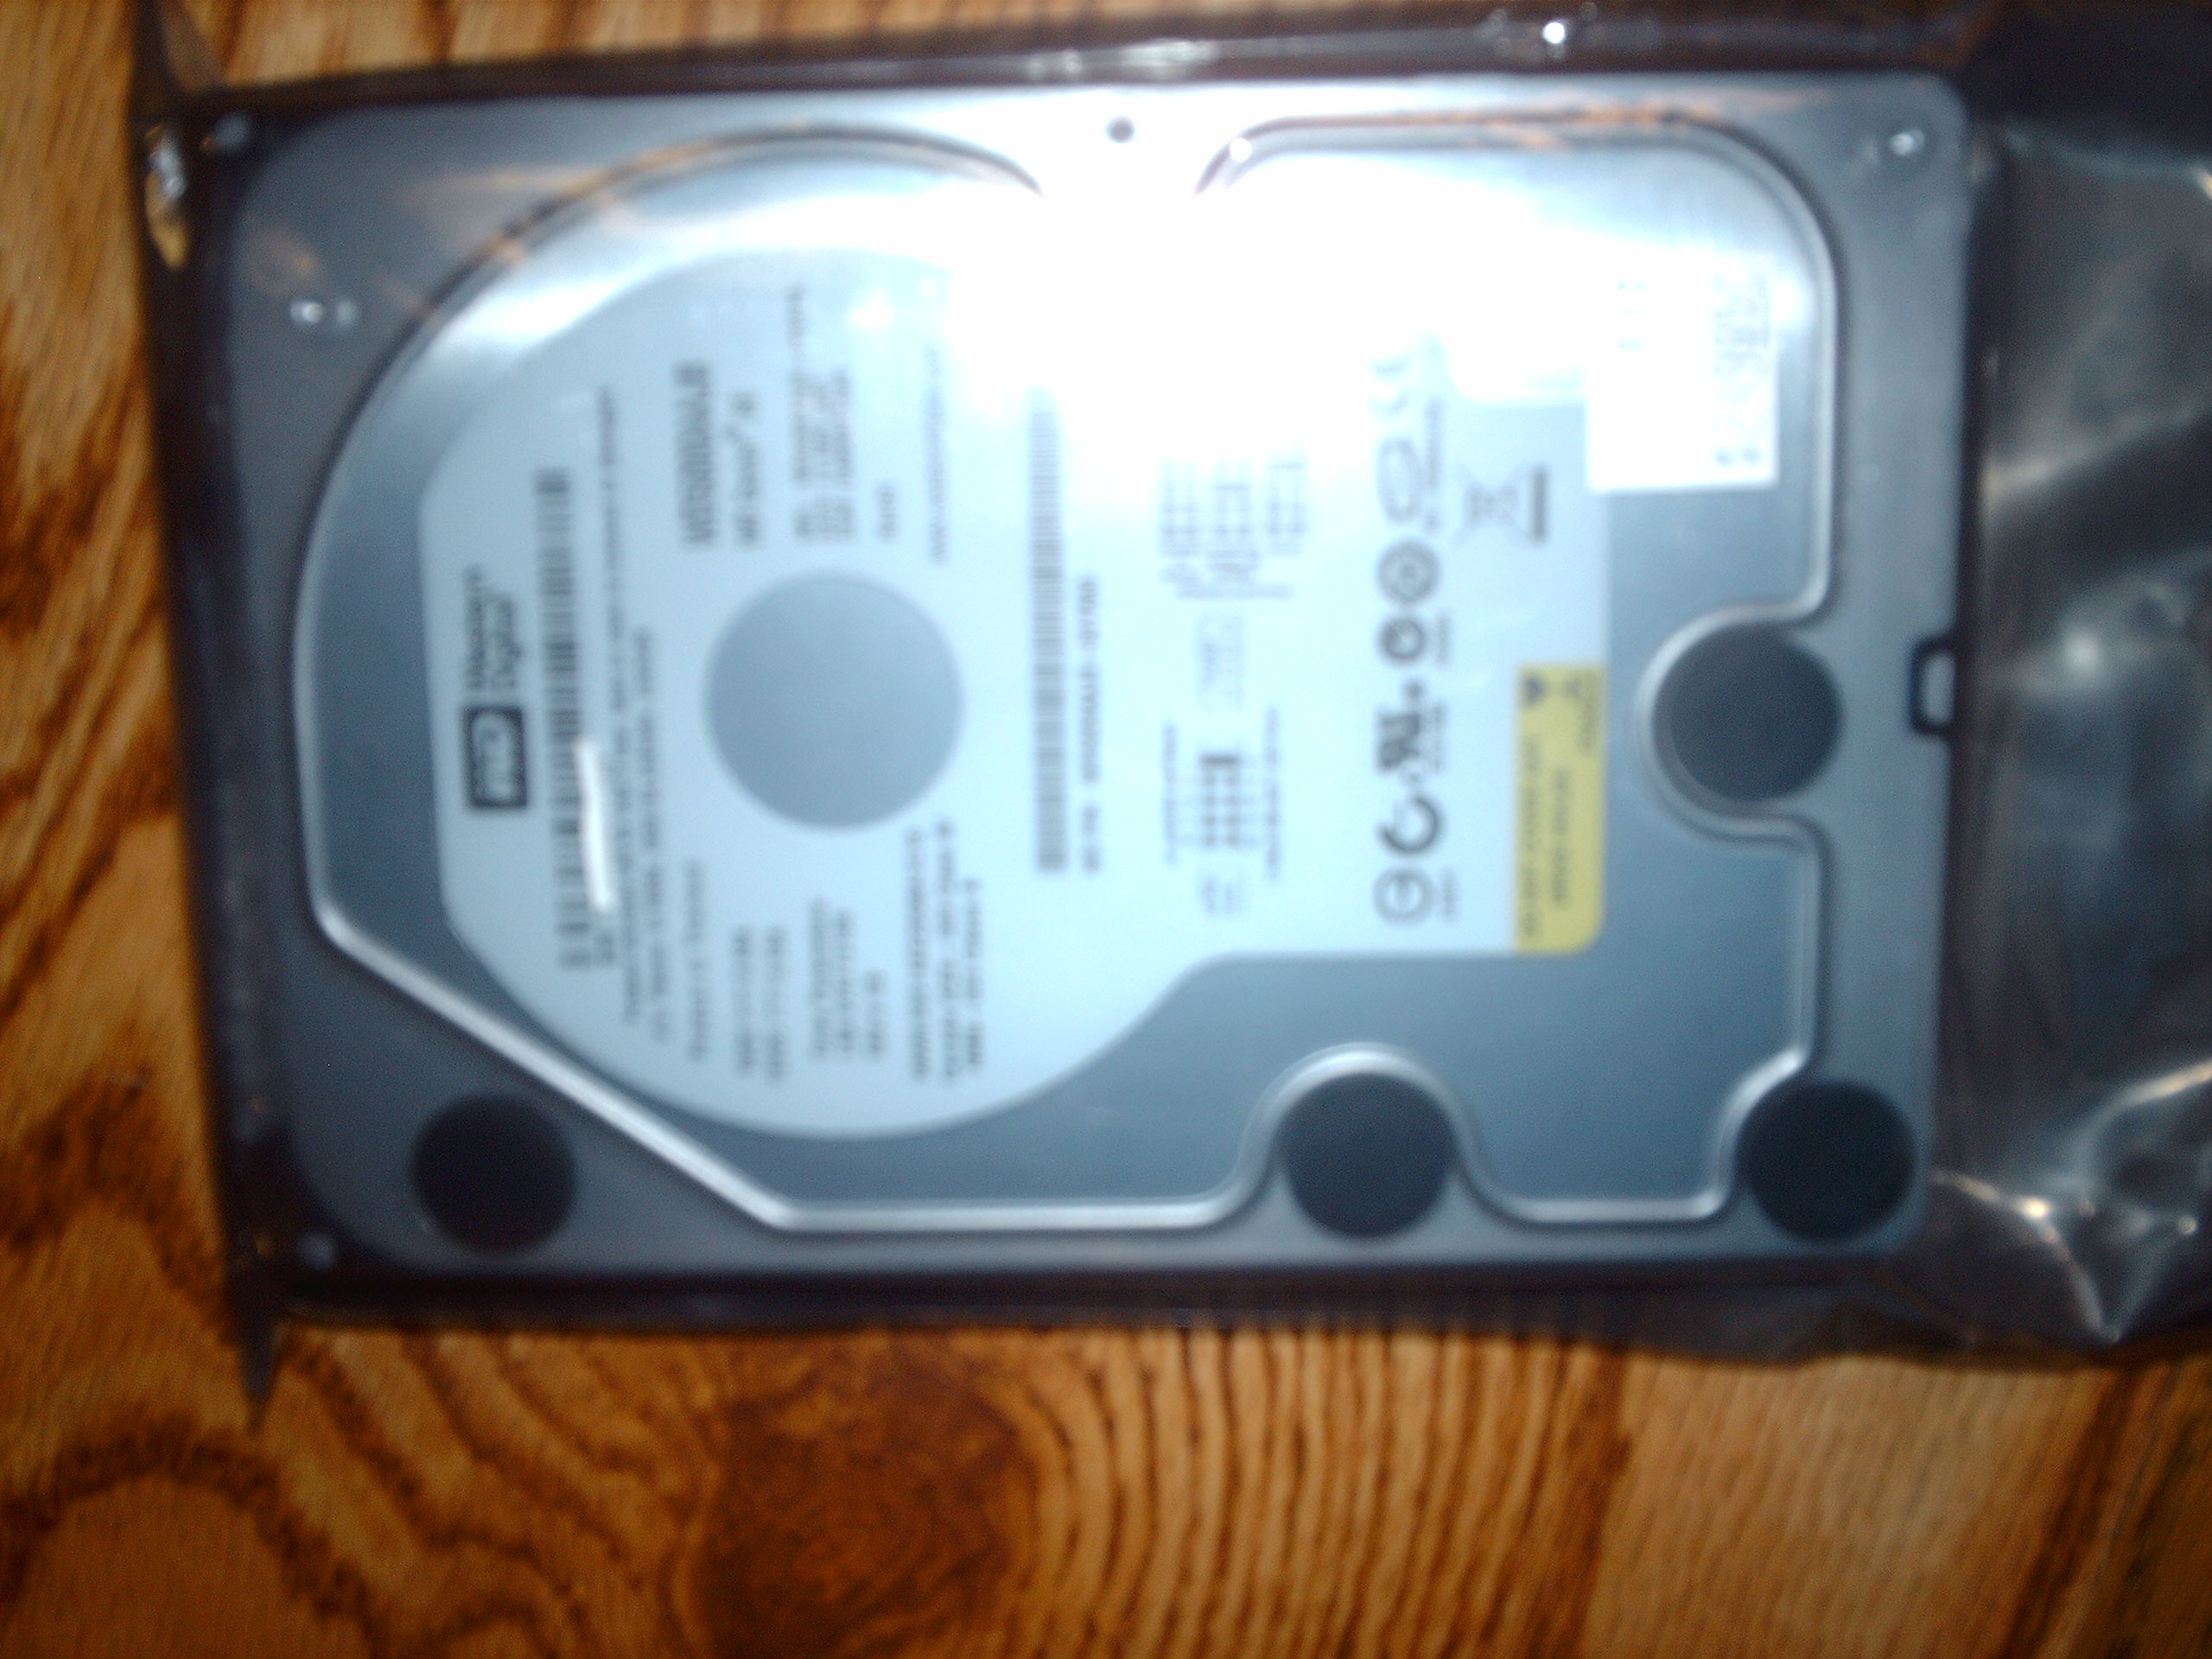 NEW Western Digital 500GB PATA Hard Drive, 7200 RPM